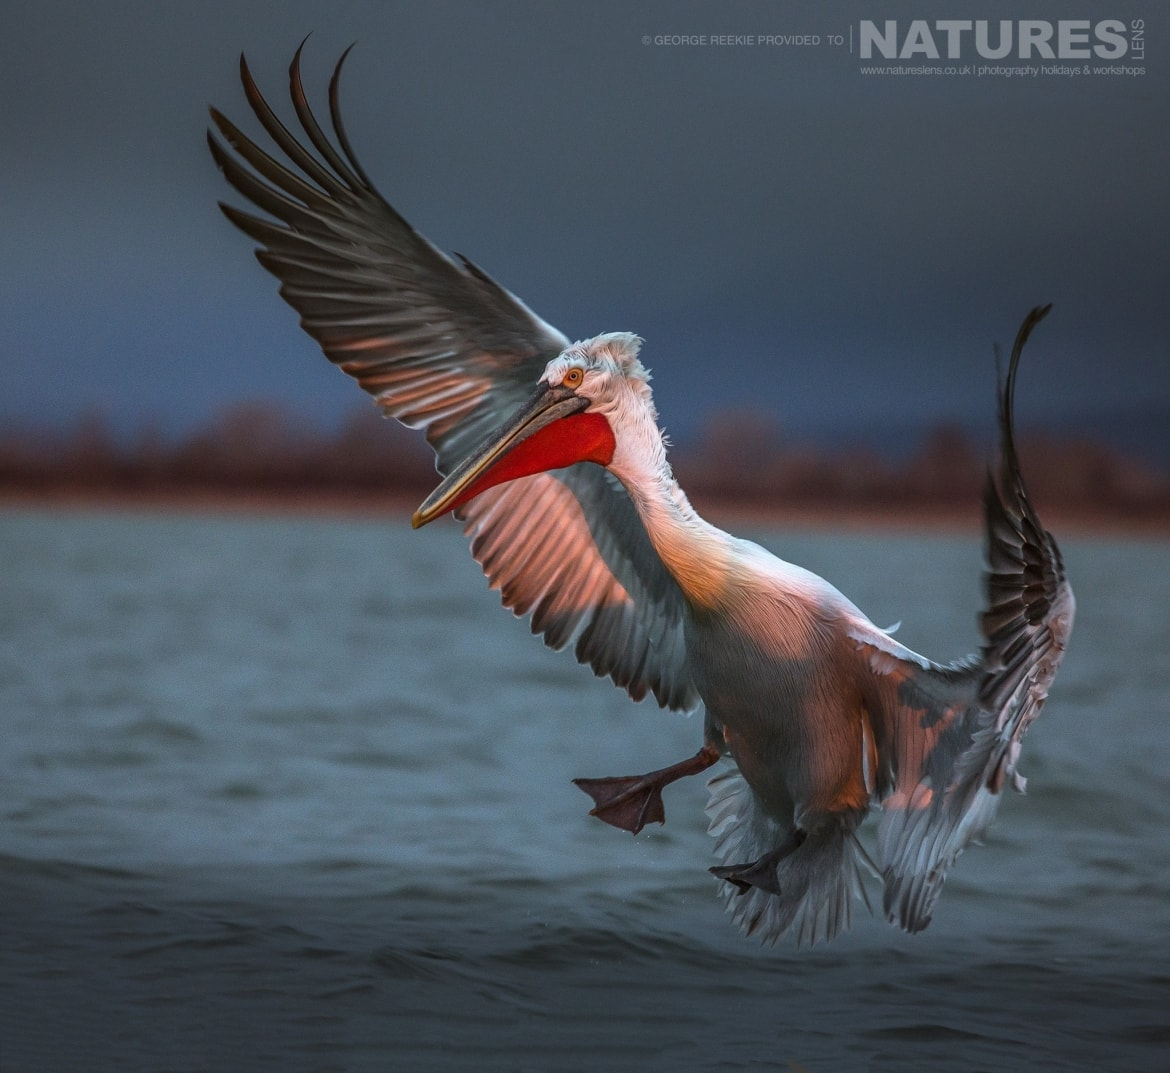 Illuminated by the rising sun, one of the Dalmatian Pelicans attempts to land on the waters of Lake Kerkini photographed during one of the NaturesLens Dalmatian Pelican Photography Holidays